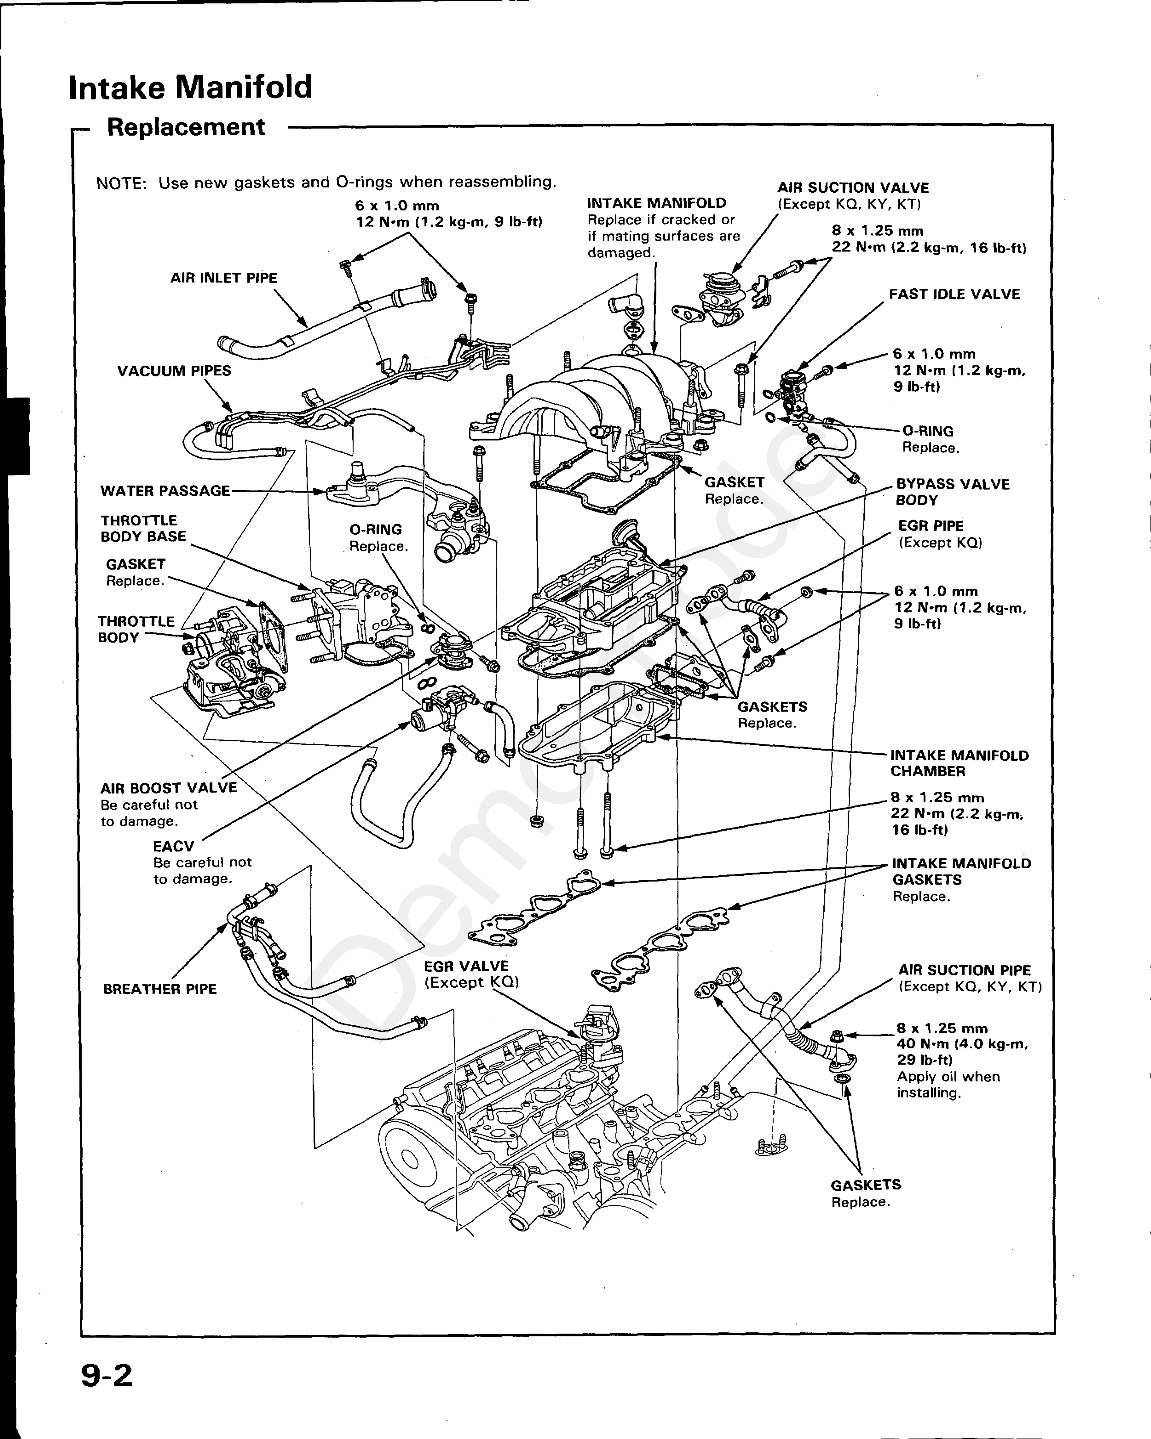 image  Honda Crx Engine Diagram on 89 ford ranger engine diagram, 89 saab 900 turbo engine diagram, 89 geo tracker engine diagram, 89 nissan stanza engine diagram, 89 acura legend engine diagram, 89 mazda 323 engine diagram, 89 nissan maxima engine diagram, 89 ford probe engine diagram,